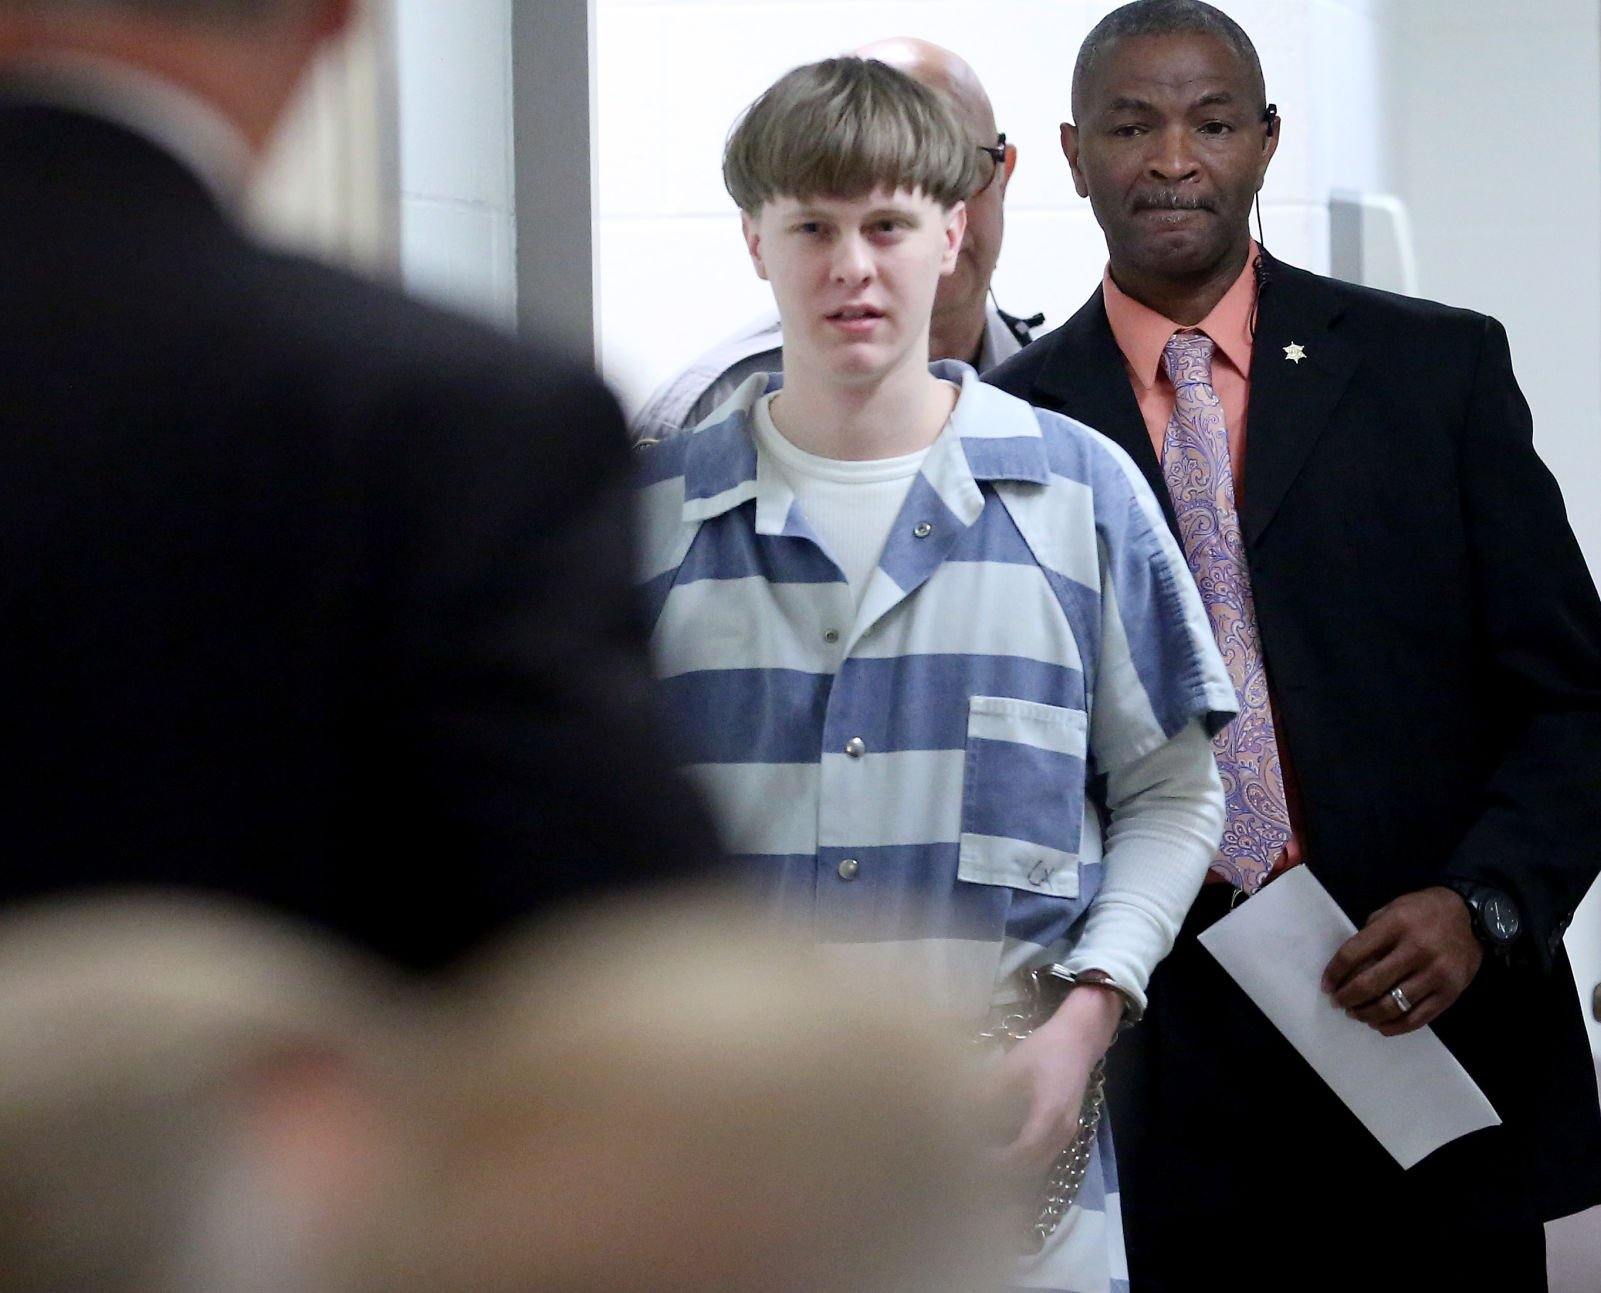 Dylann Roof seeks new attorneys in federal appeals case